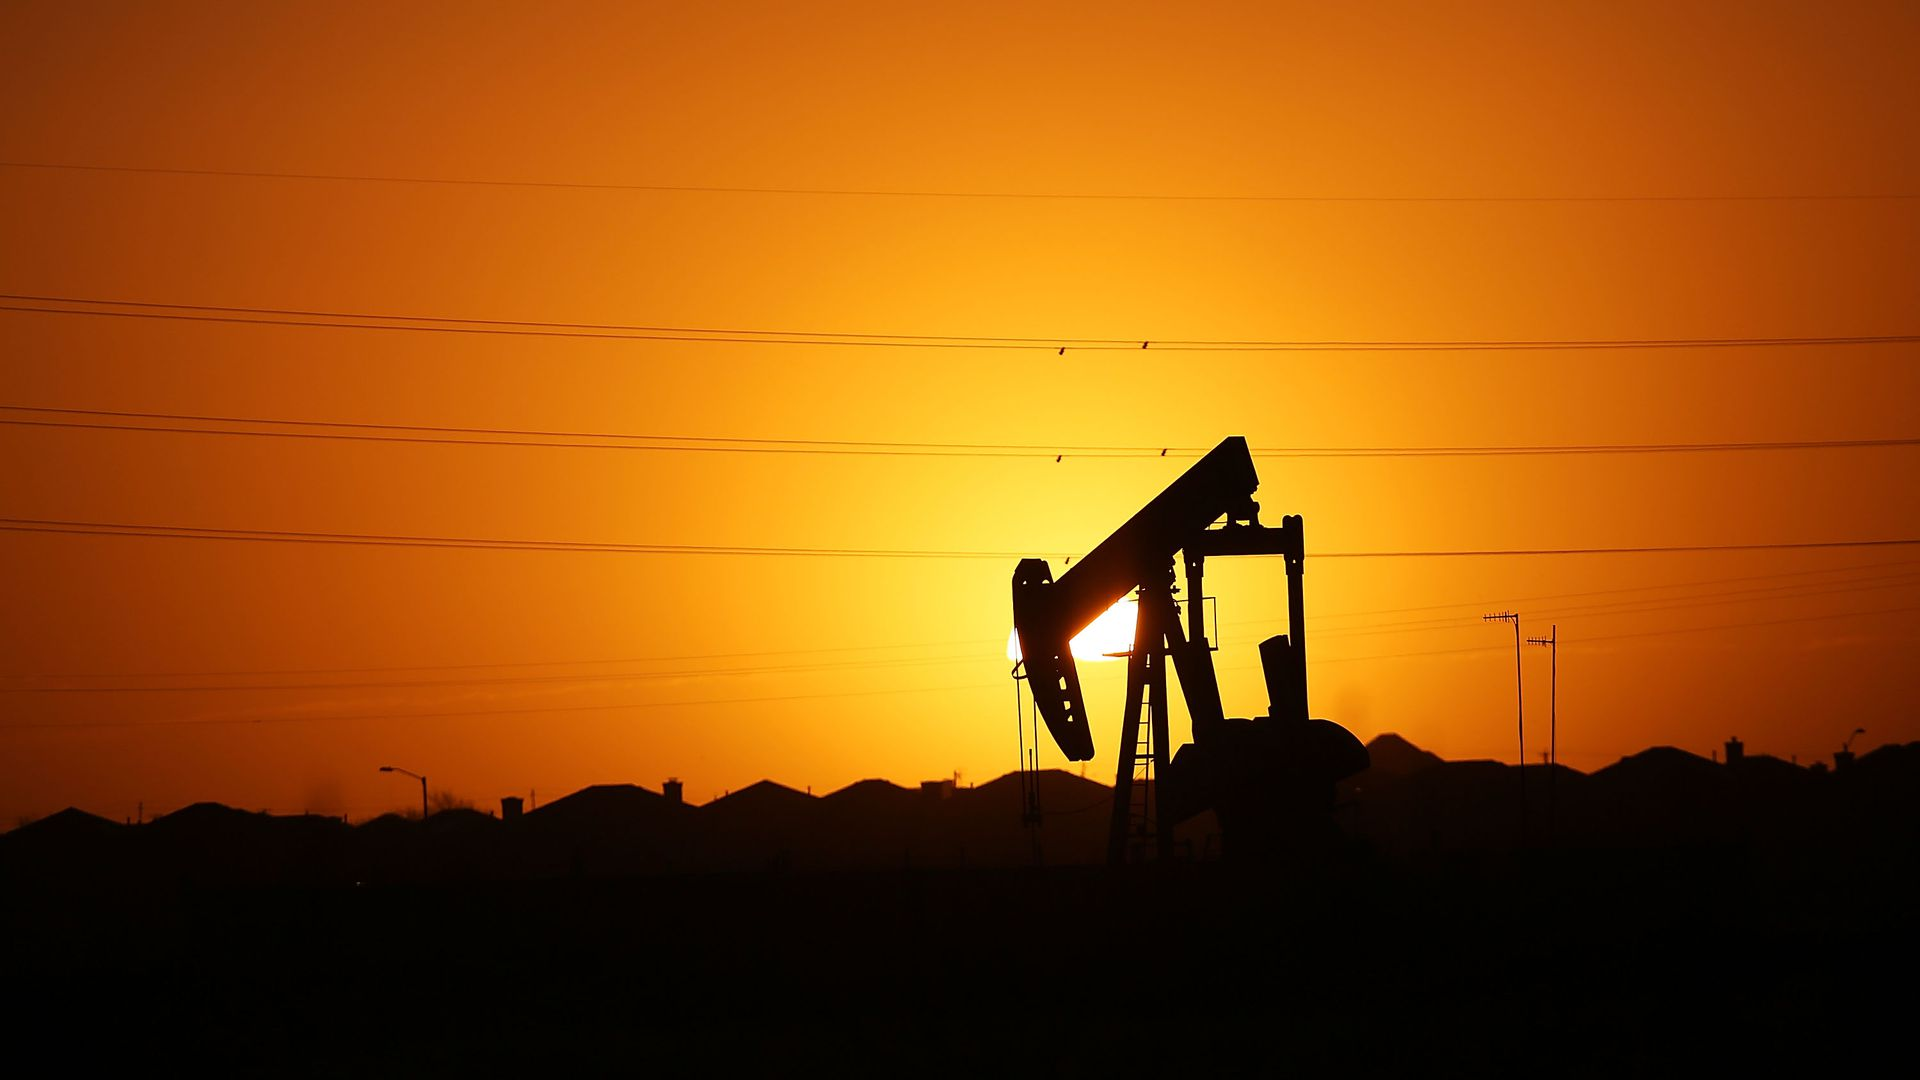 A oil pump in Texas at sunset